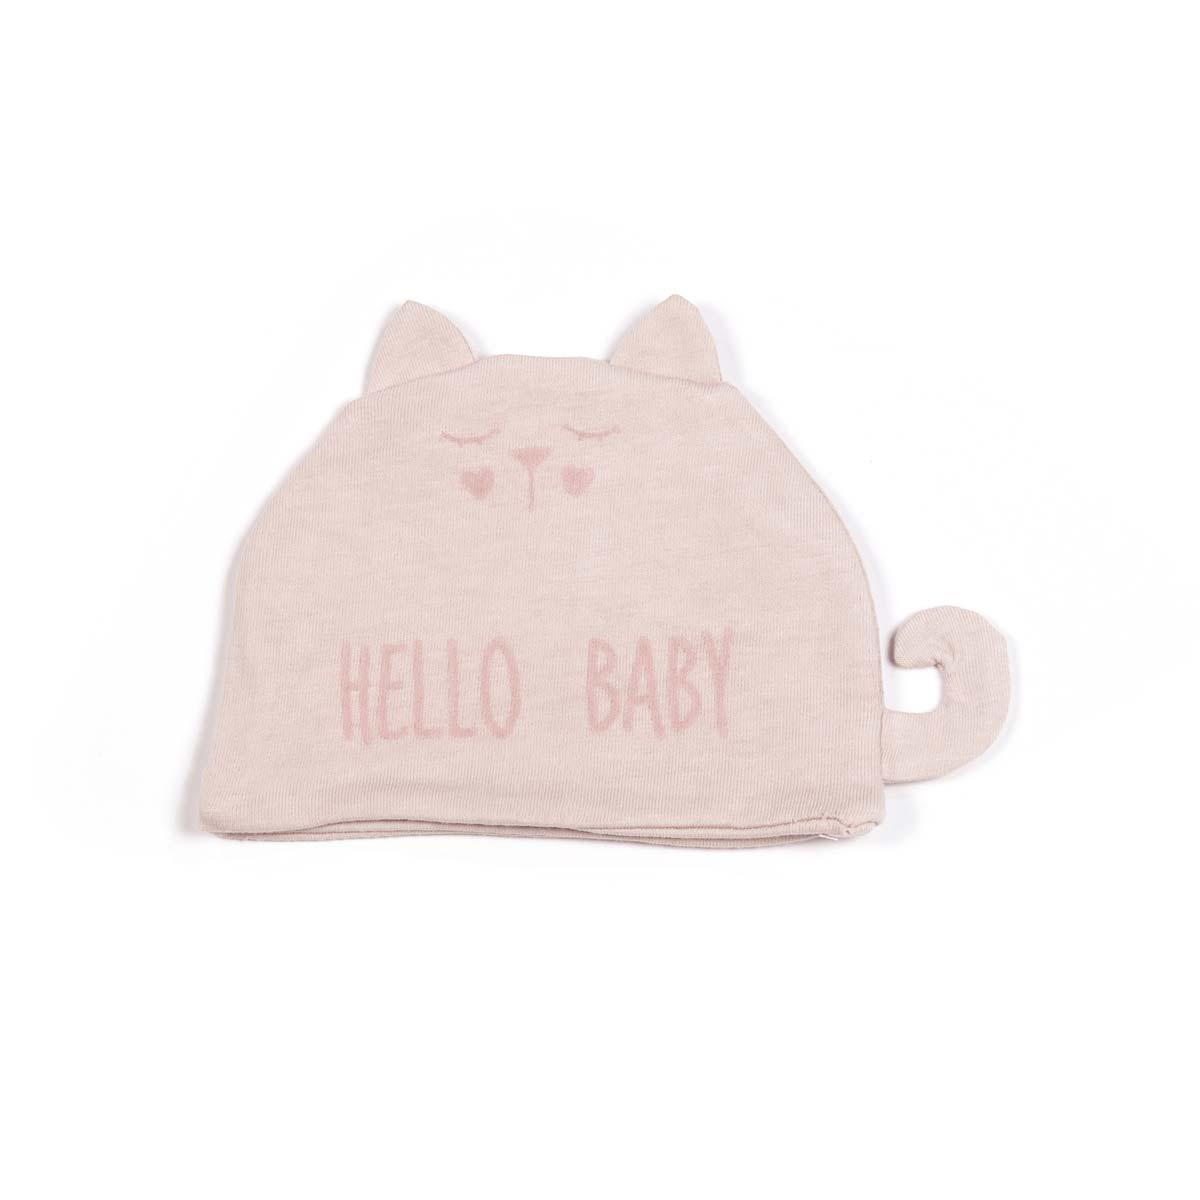 Gorro Rosa Hello Baby Walking Mum